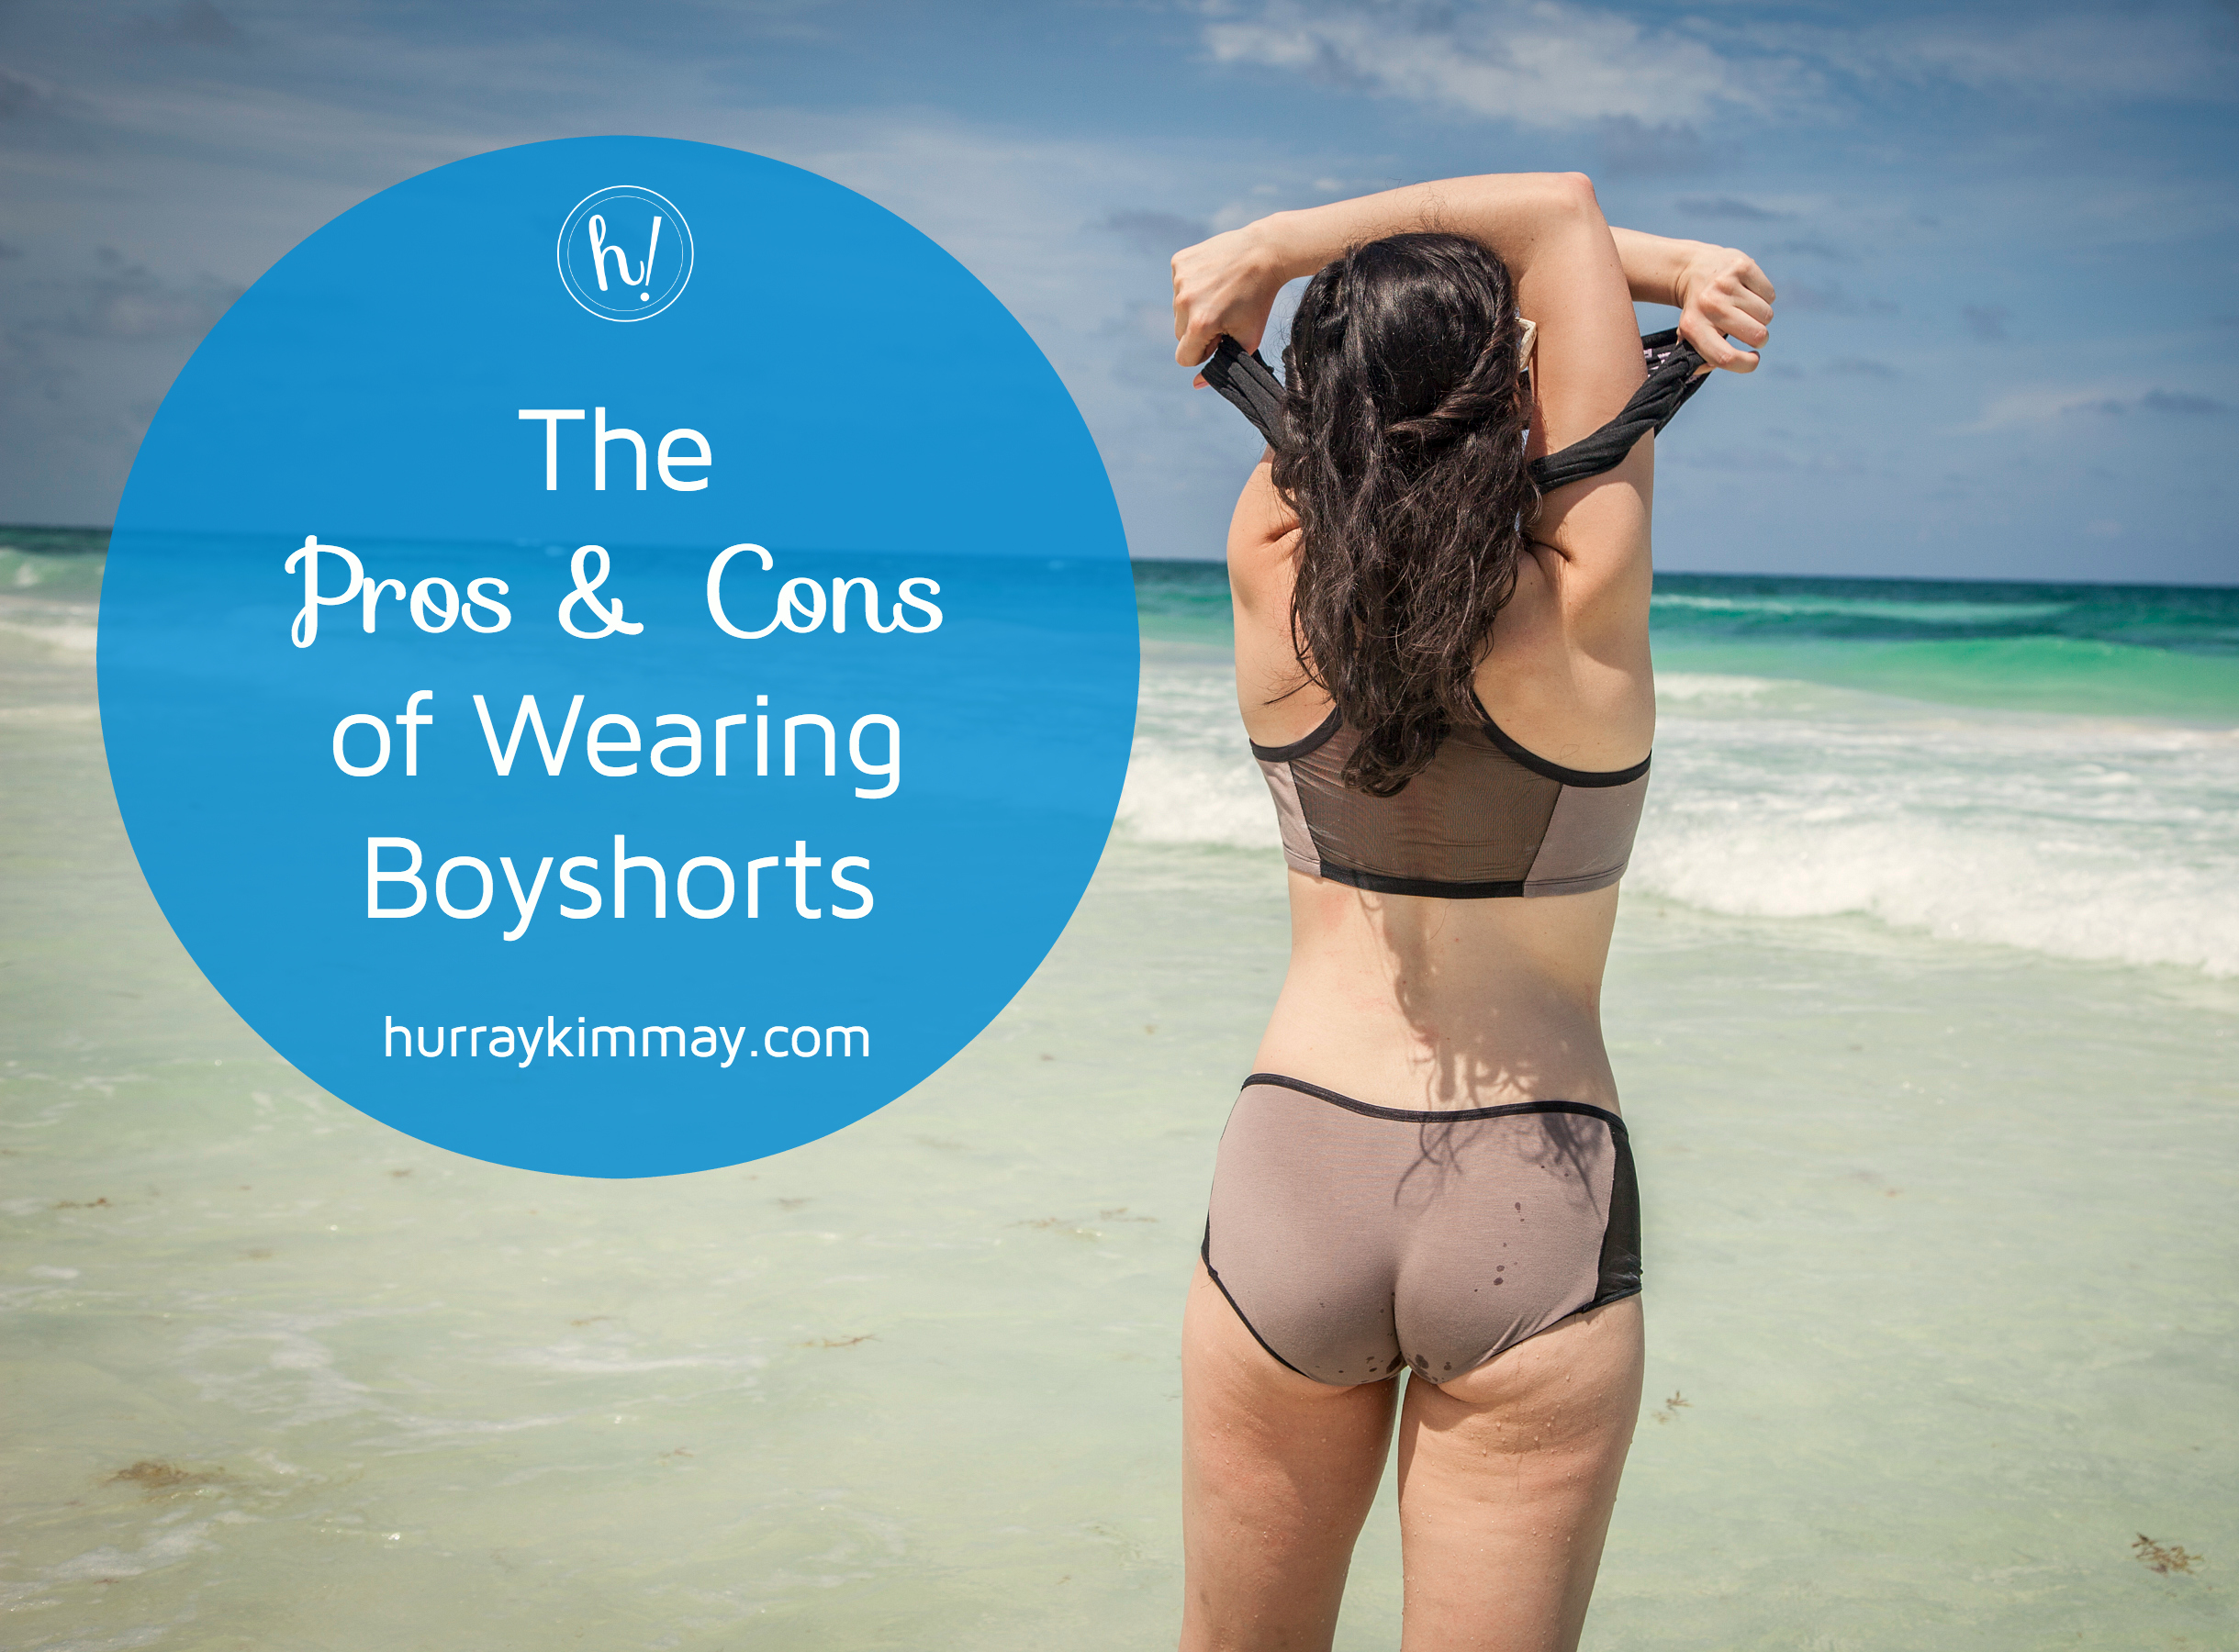 the pros & cons of wearing boyshorts - hurray kimmay